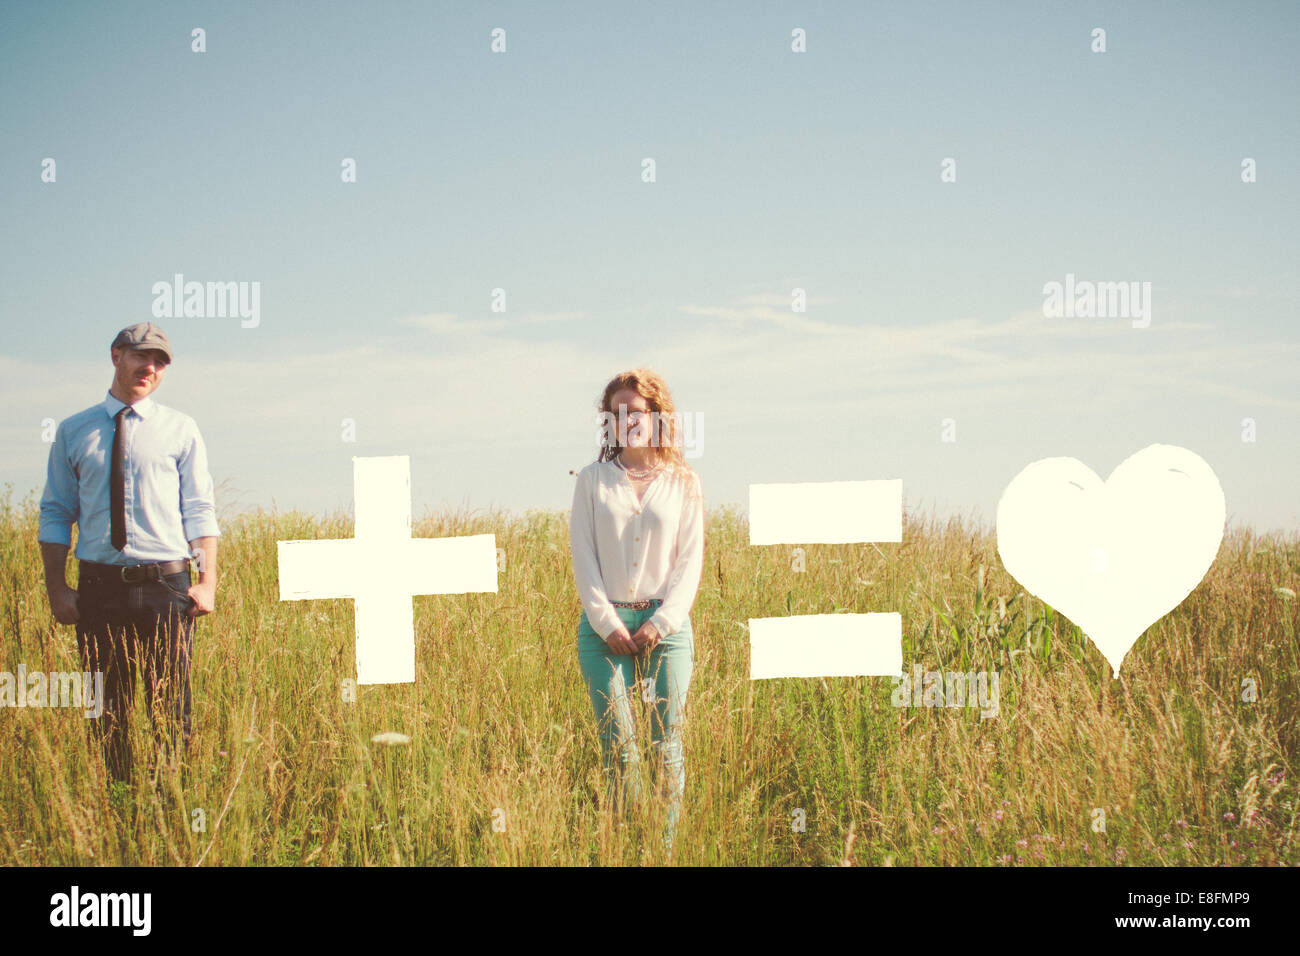 USA, Tennessee, Davidson County, Nashville, Couple and love equation on meadow - Stock Image